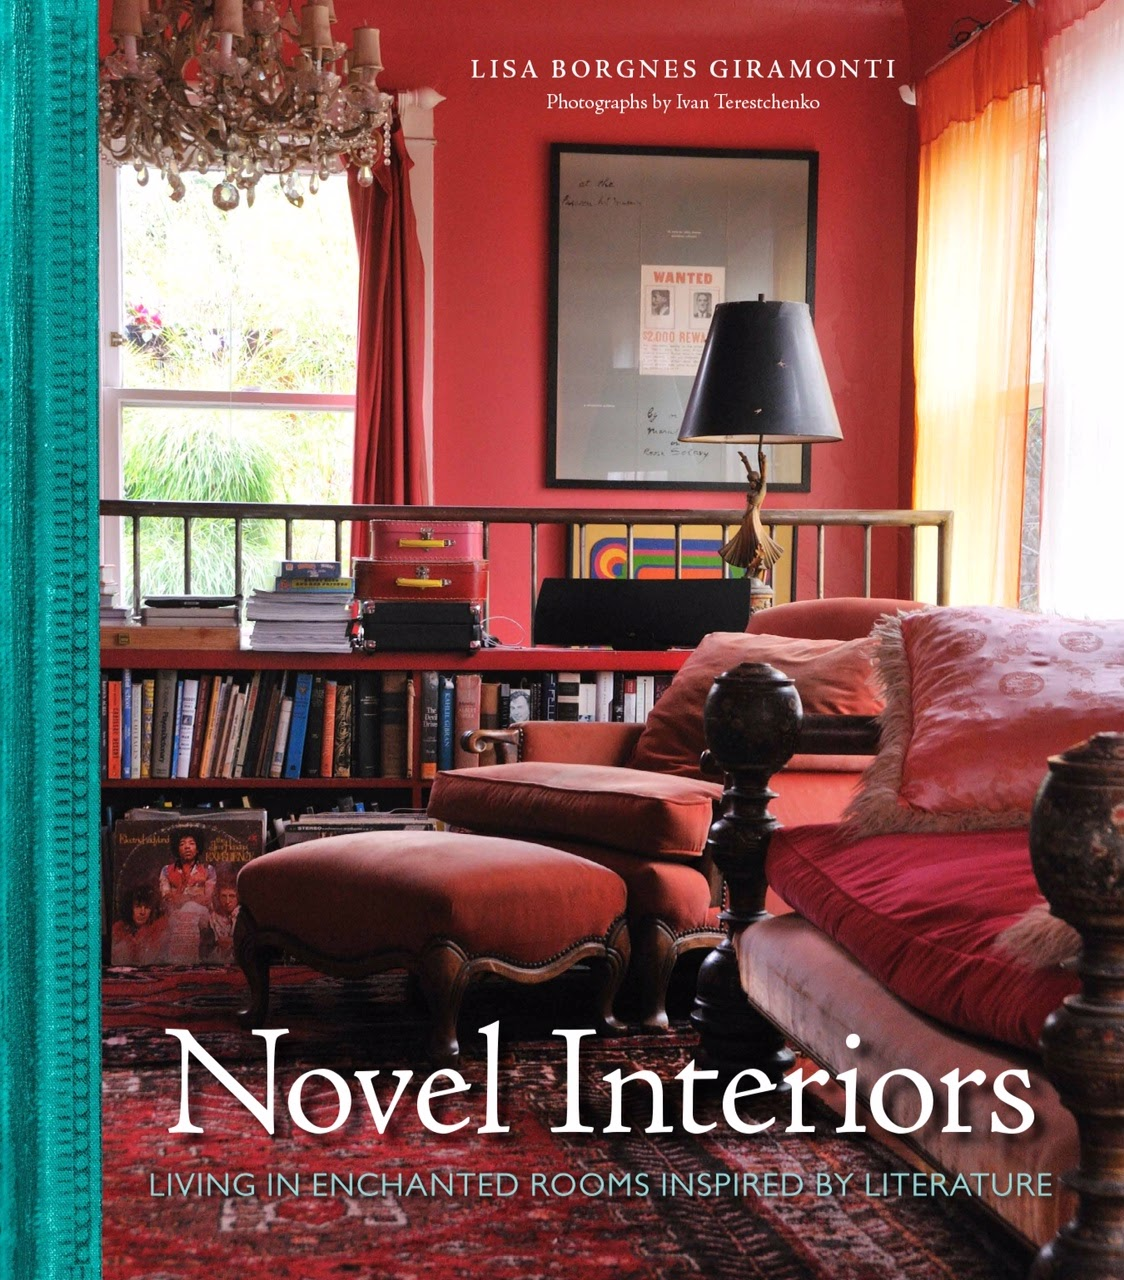 Novel Interiors. Random House, New York